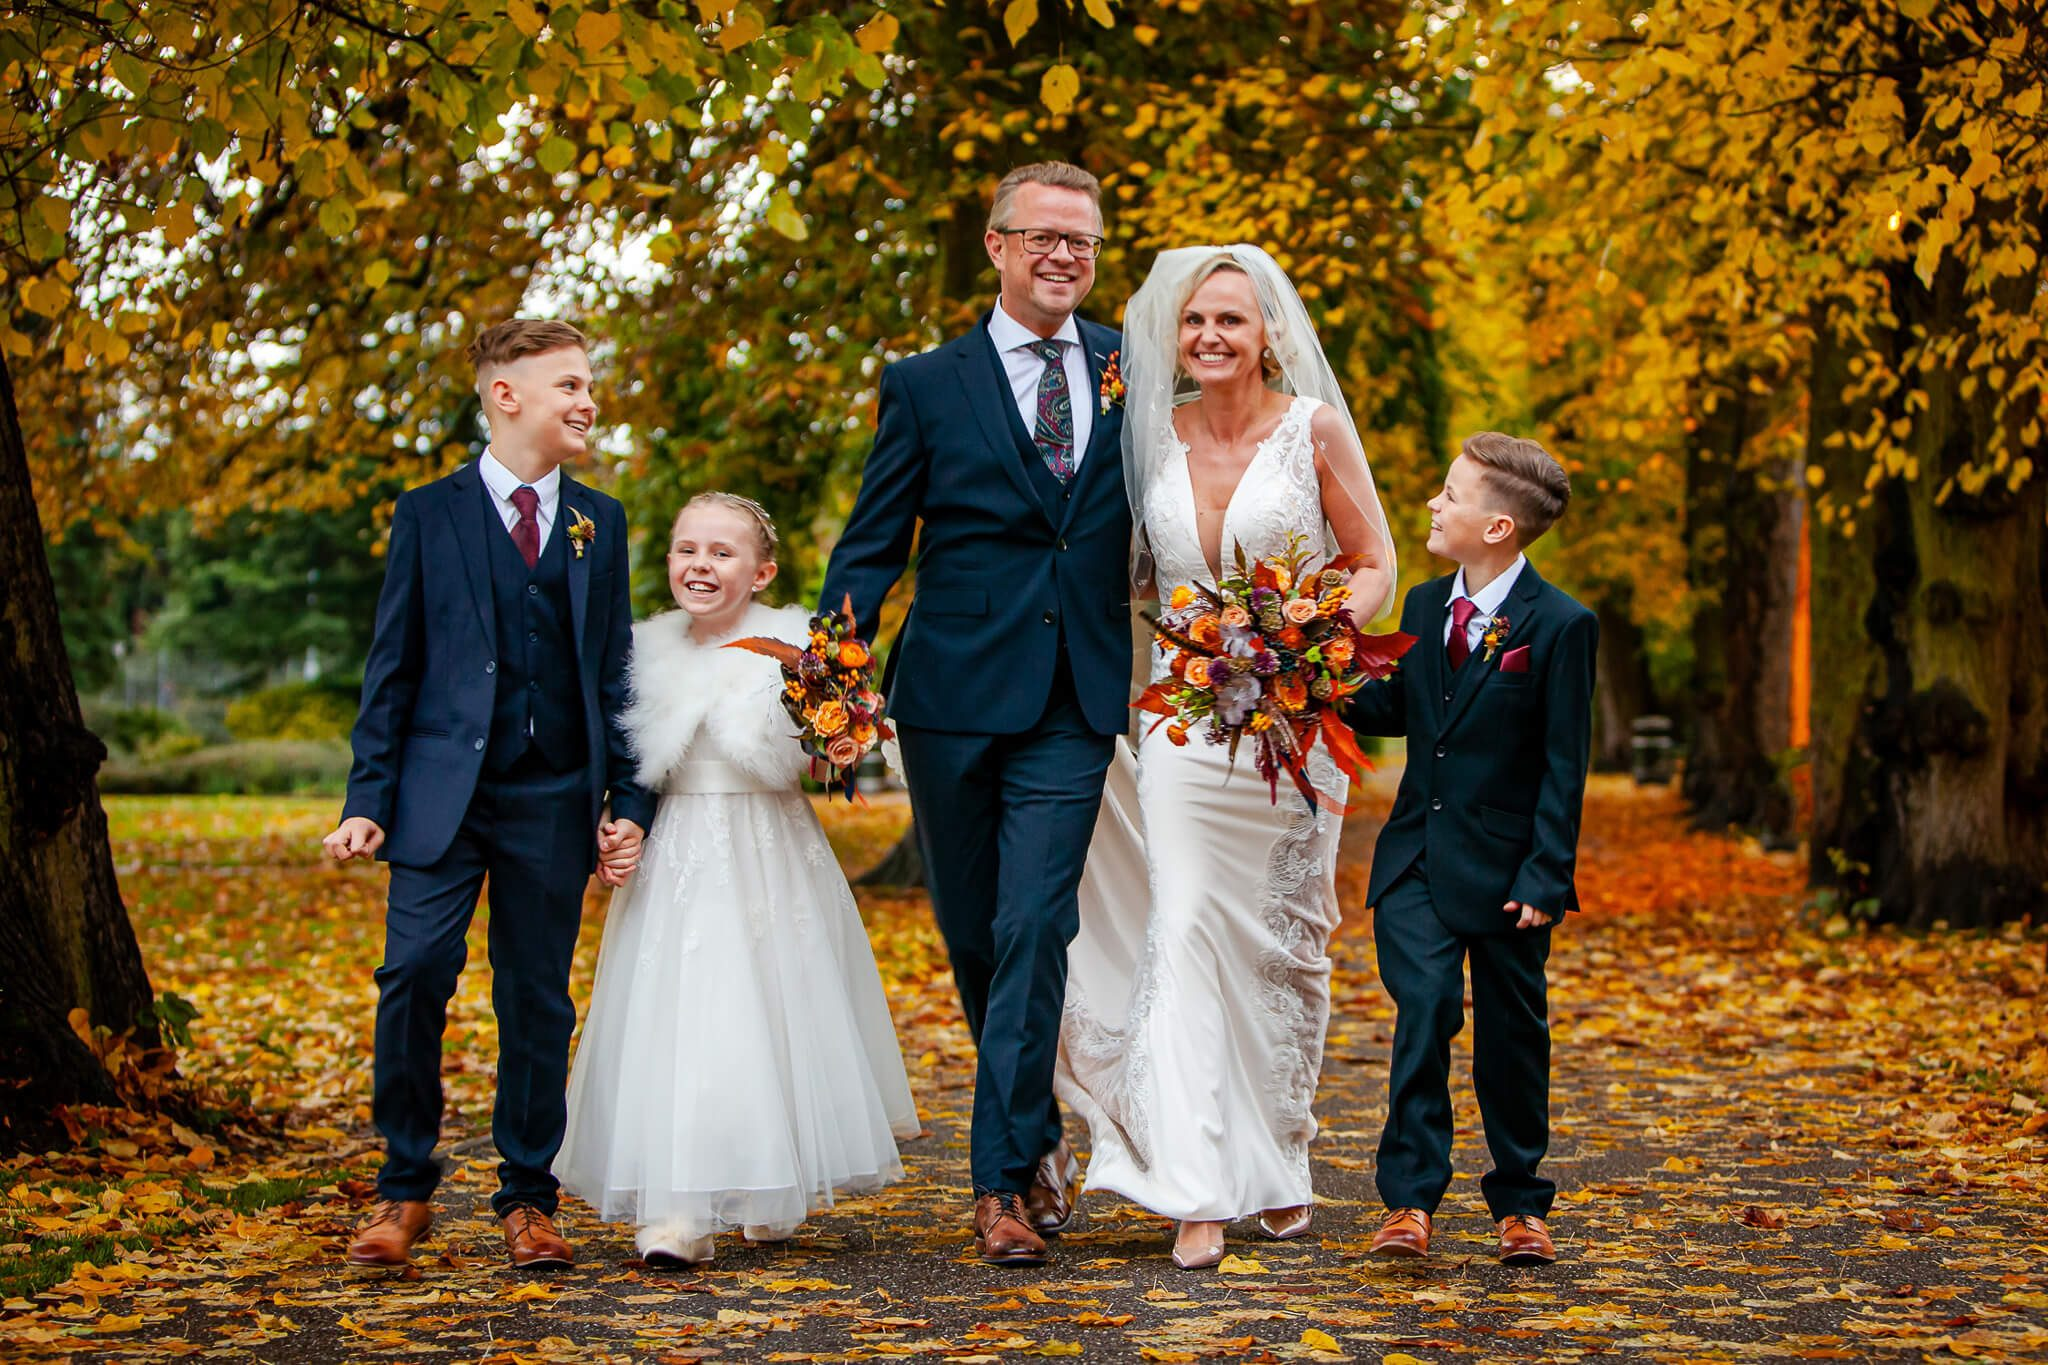 family-bride-groom-wedding-photography-stanbury-photography